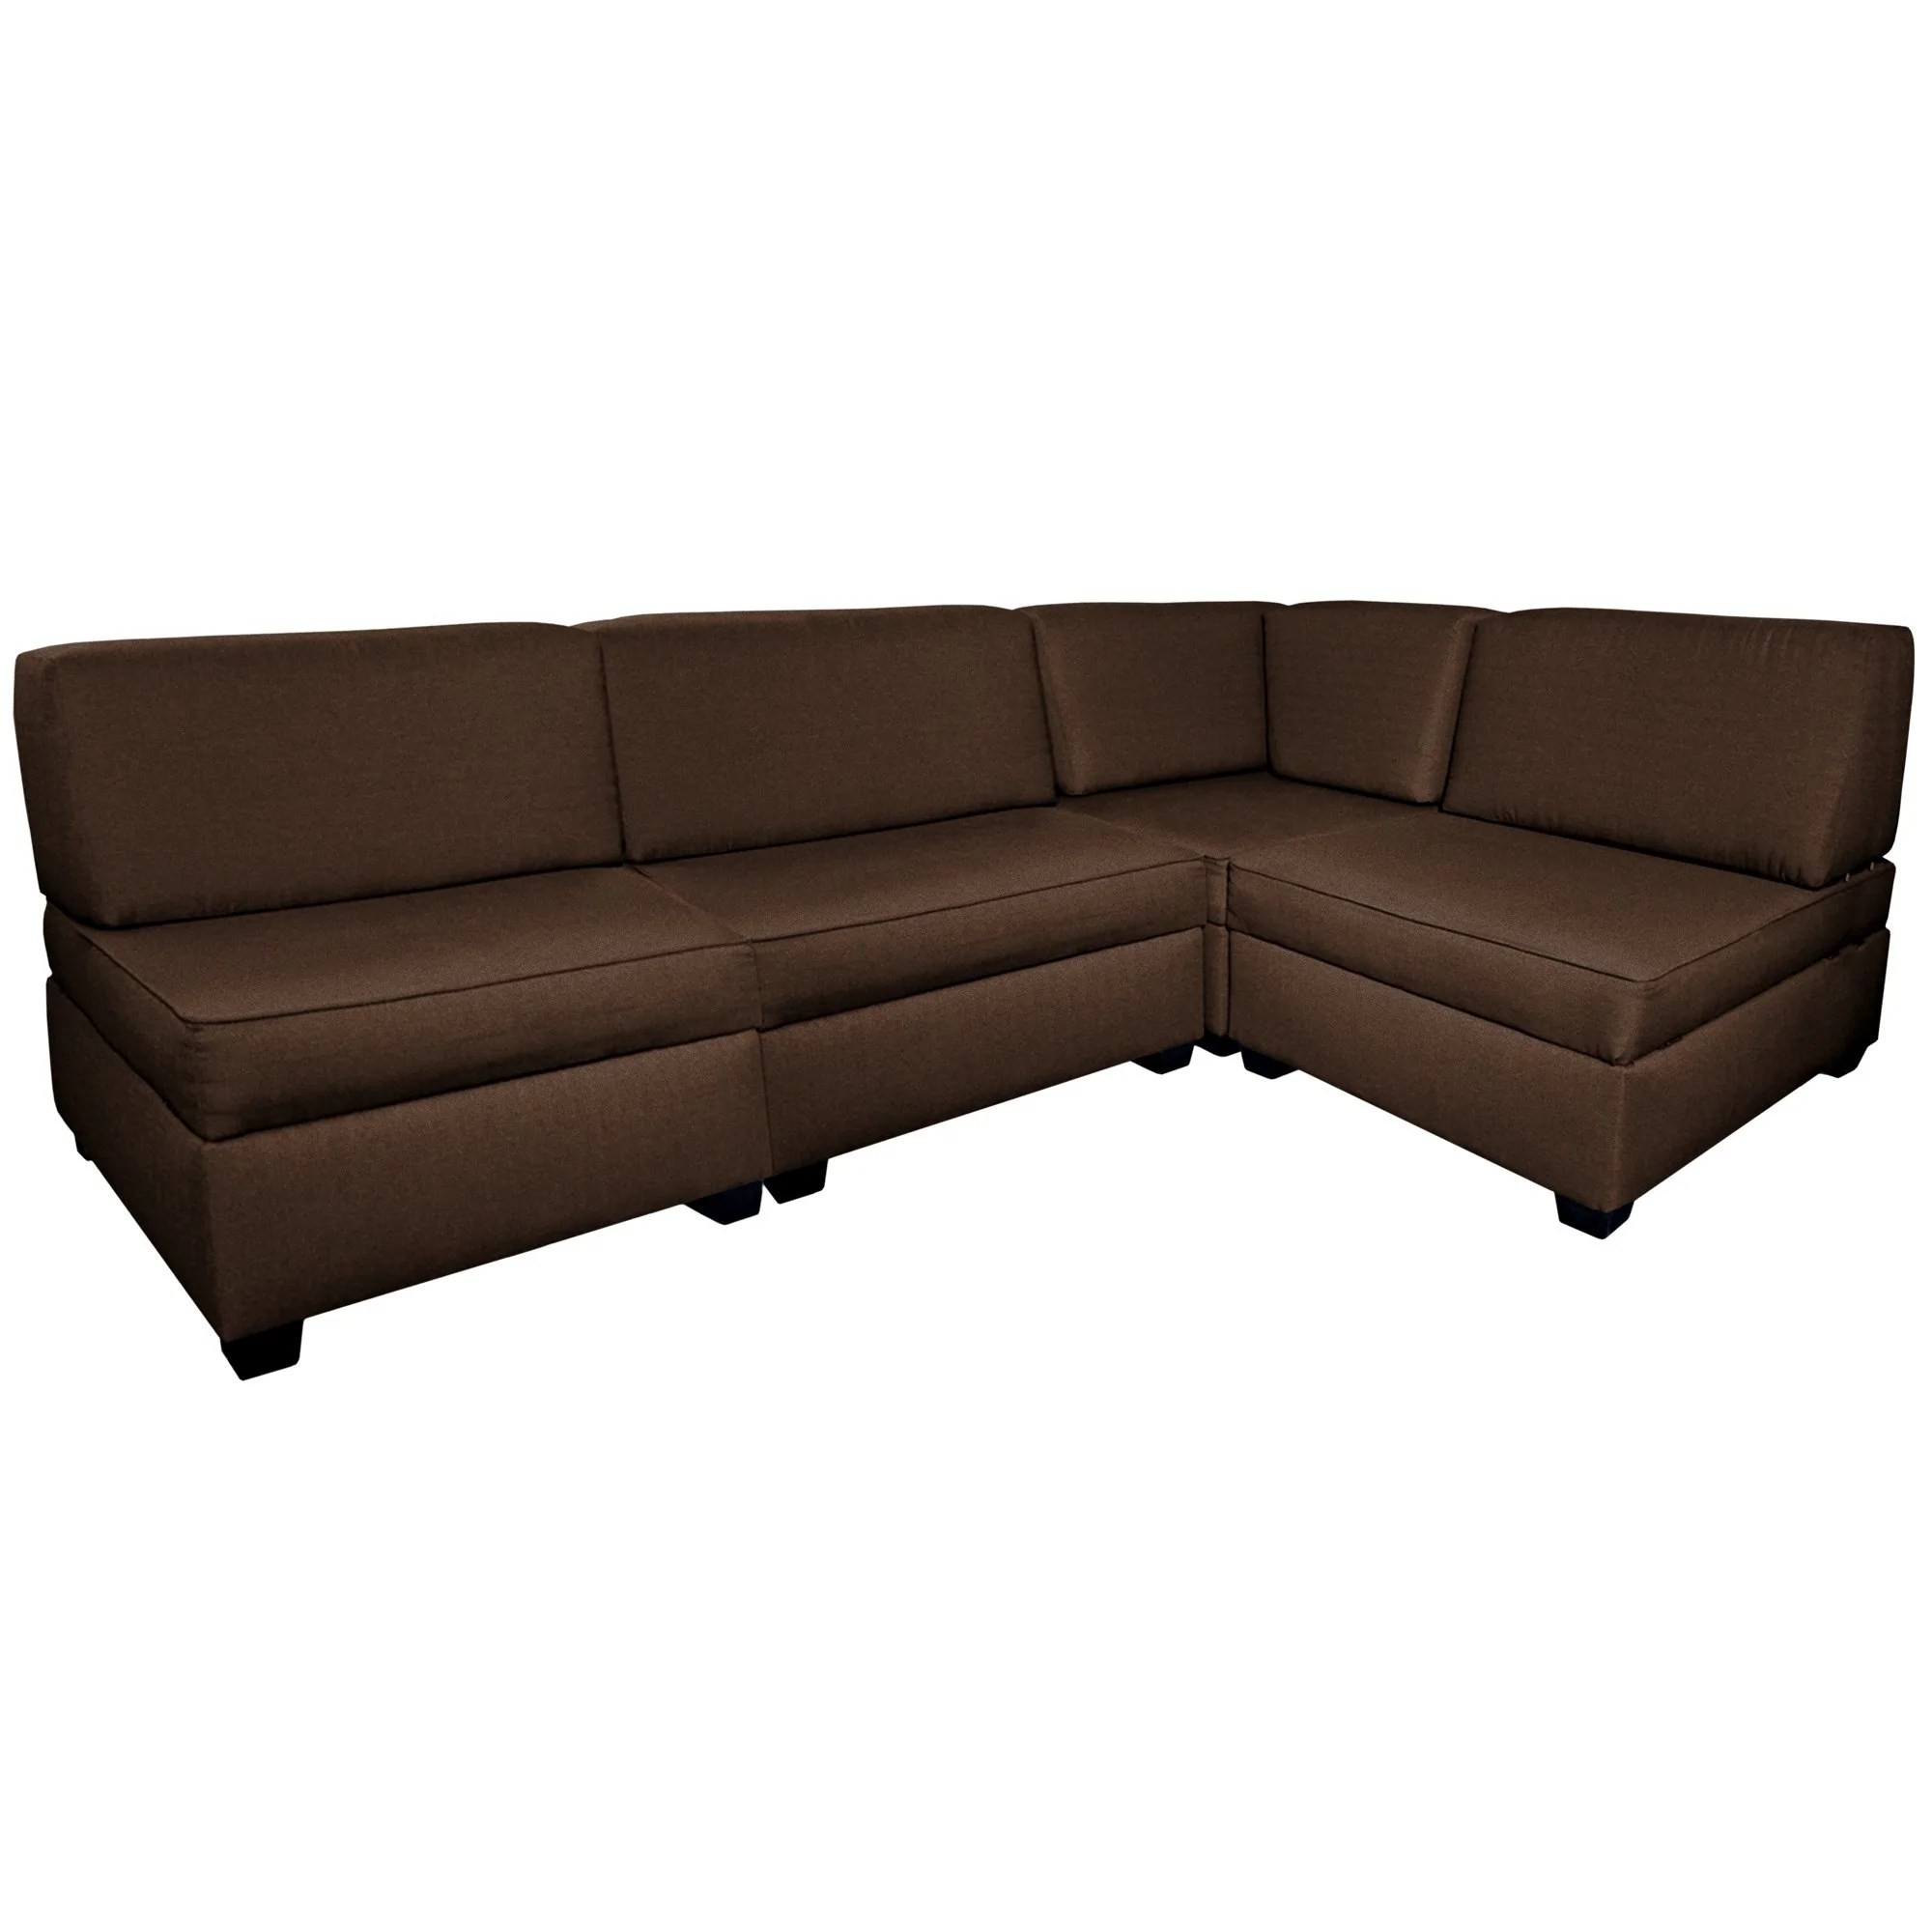 Sectional Bed Sofa Duobeds Corner Modular Sectional Couch Duobed Store